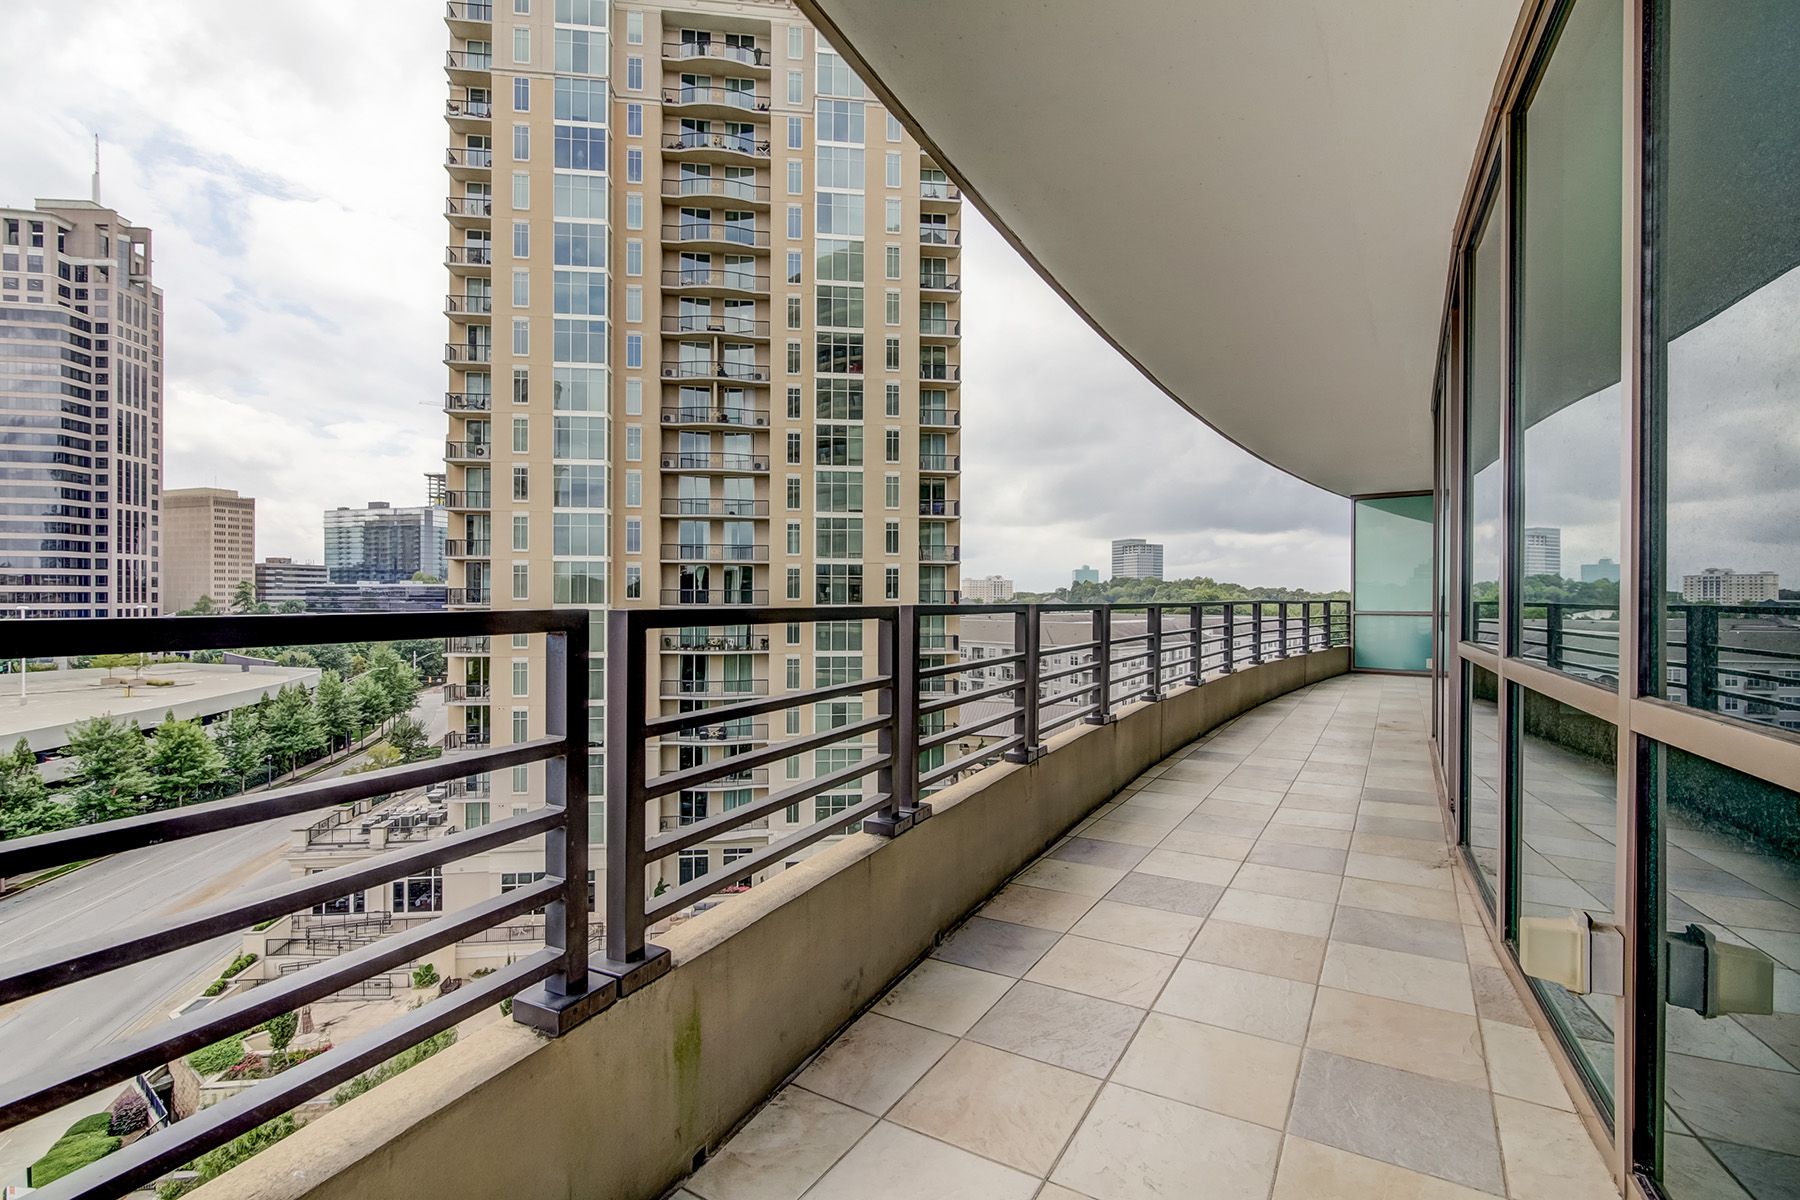 Condominium for Sale at Luxury Buckhead Condo 700 Park Regency Place NE No. 1204 Atlanta, Georgia 30326 United States